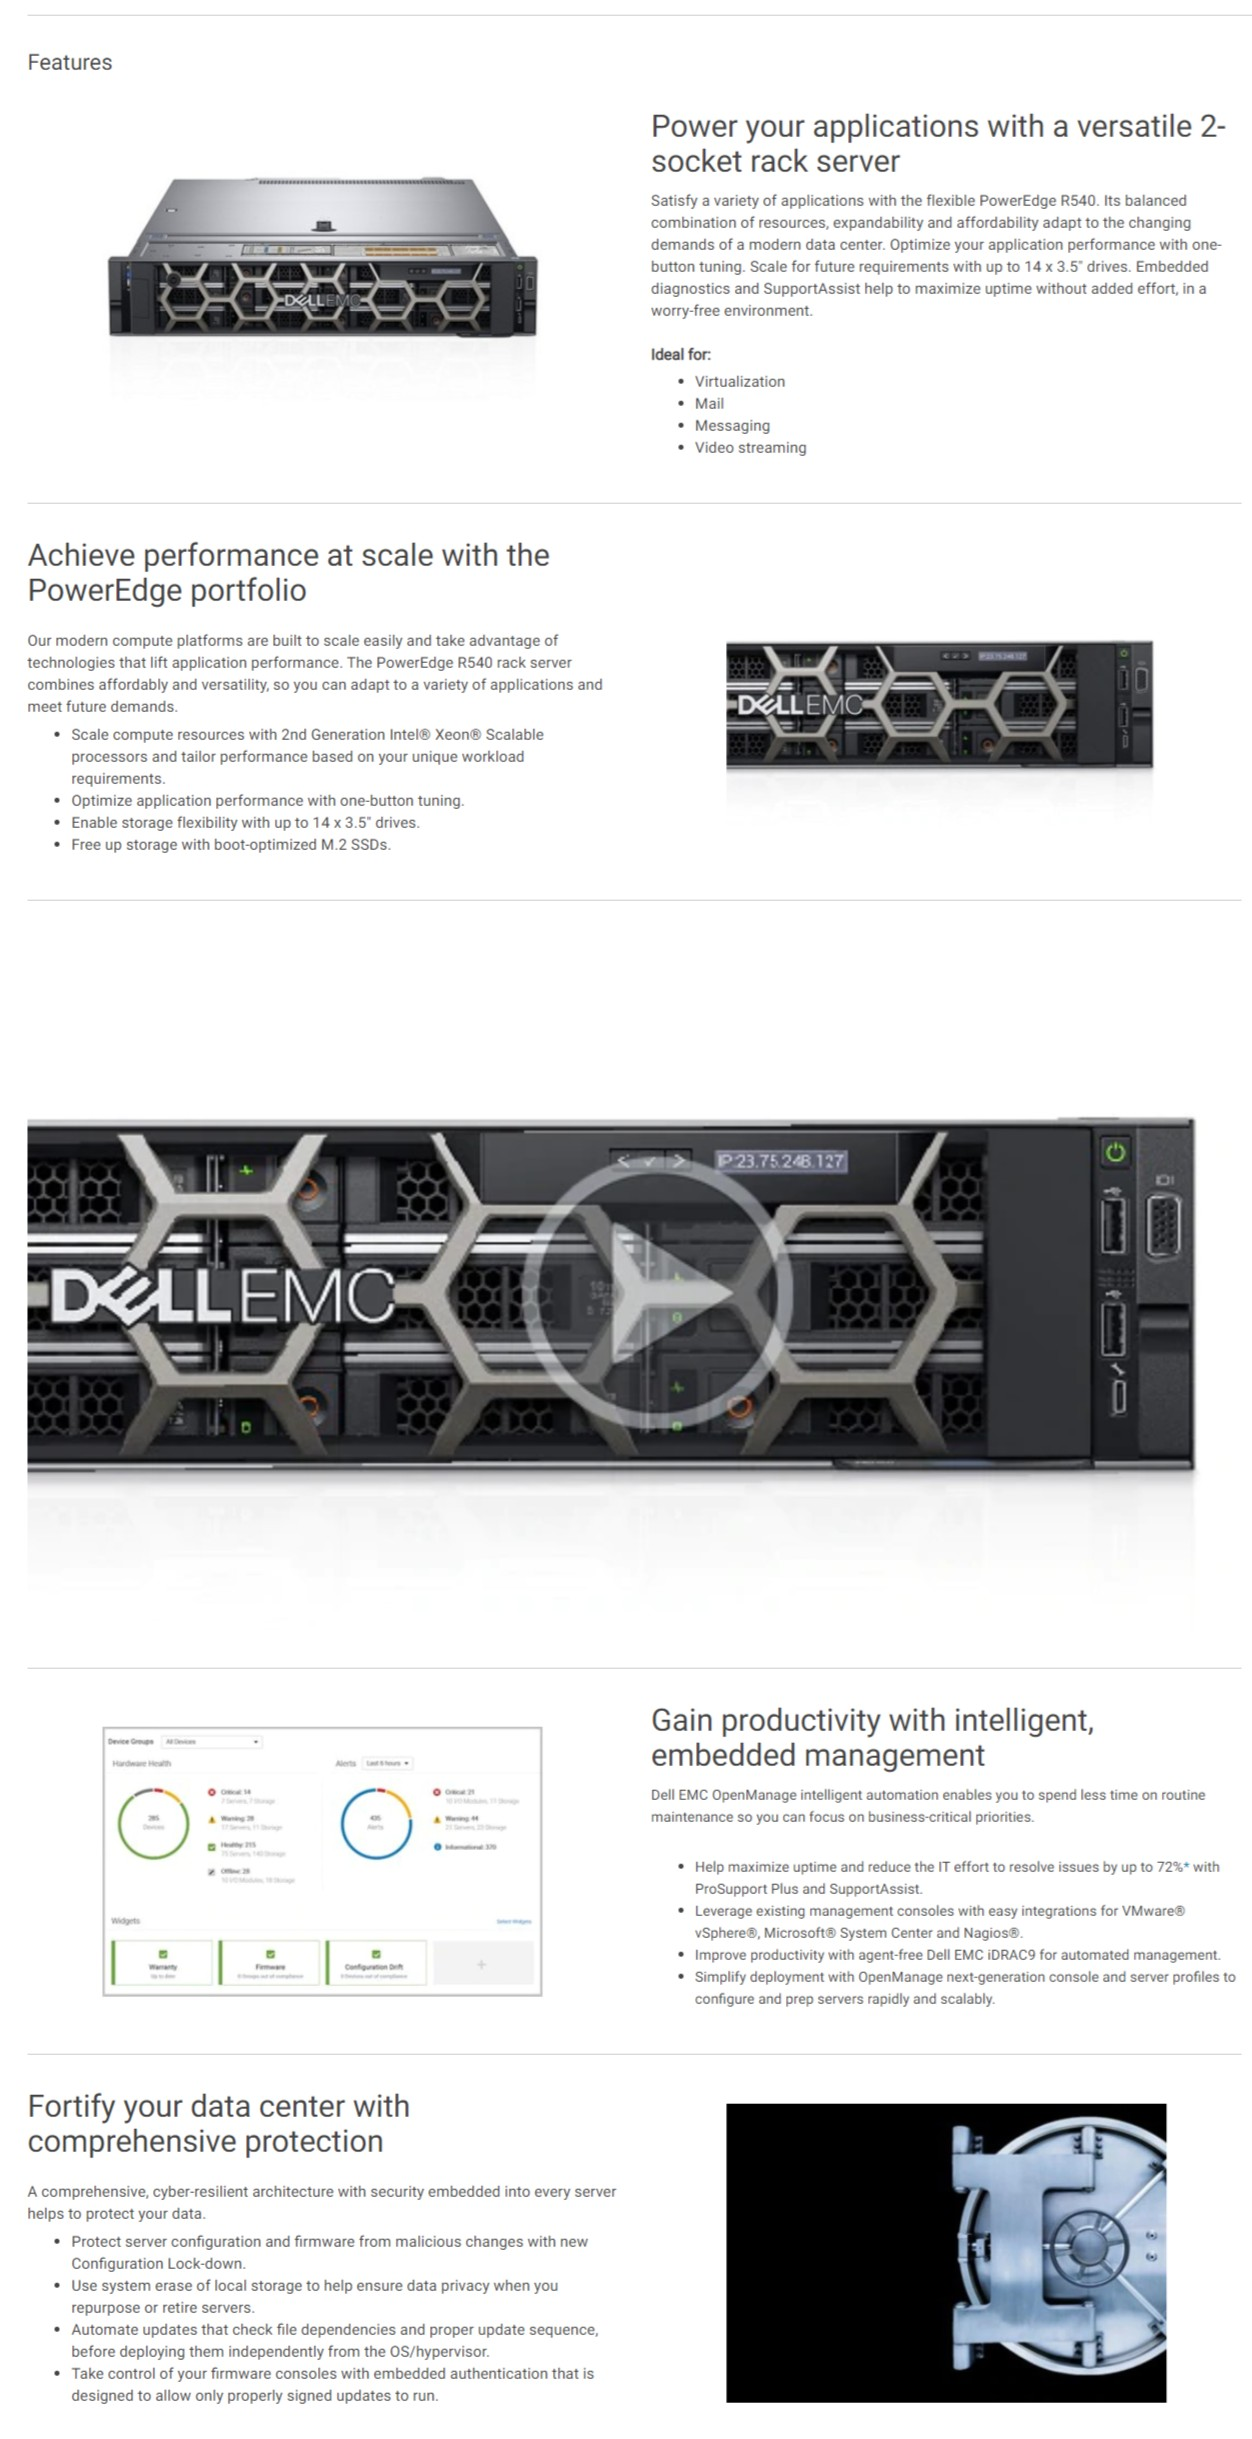 Dell Poweredge R540 pd.jpeg